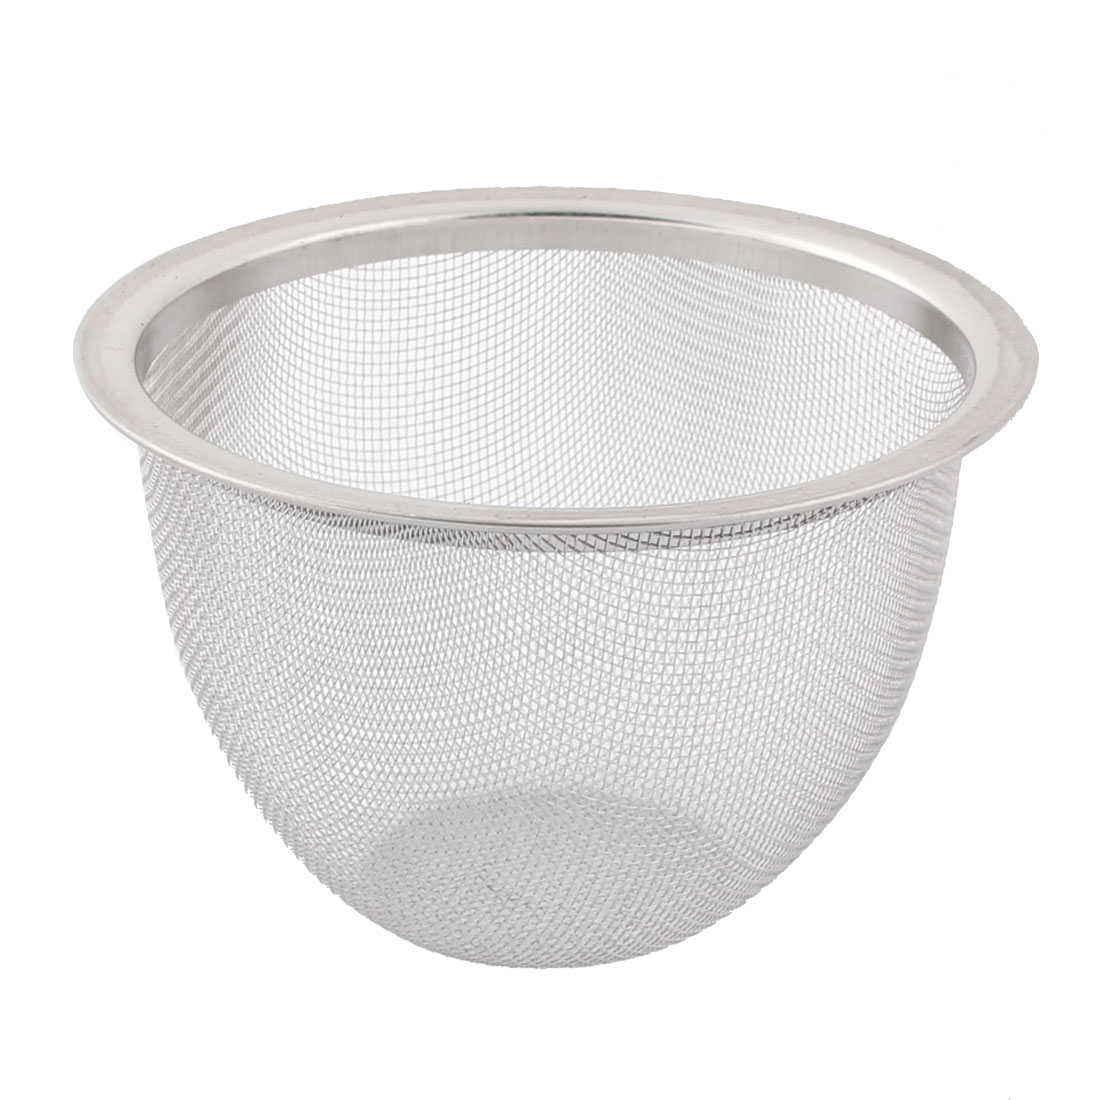 Tea Leaf Spice Stainless Steel Round Wire Mesh Filter Strainer 8cm Dia